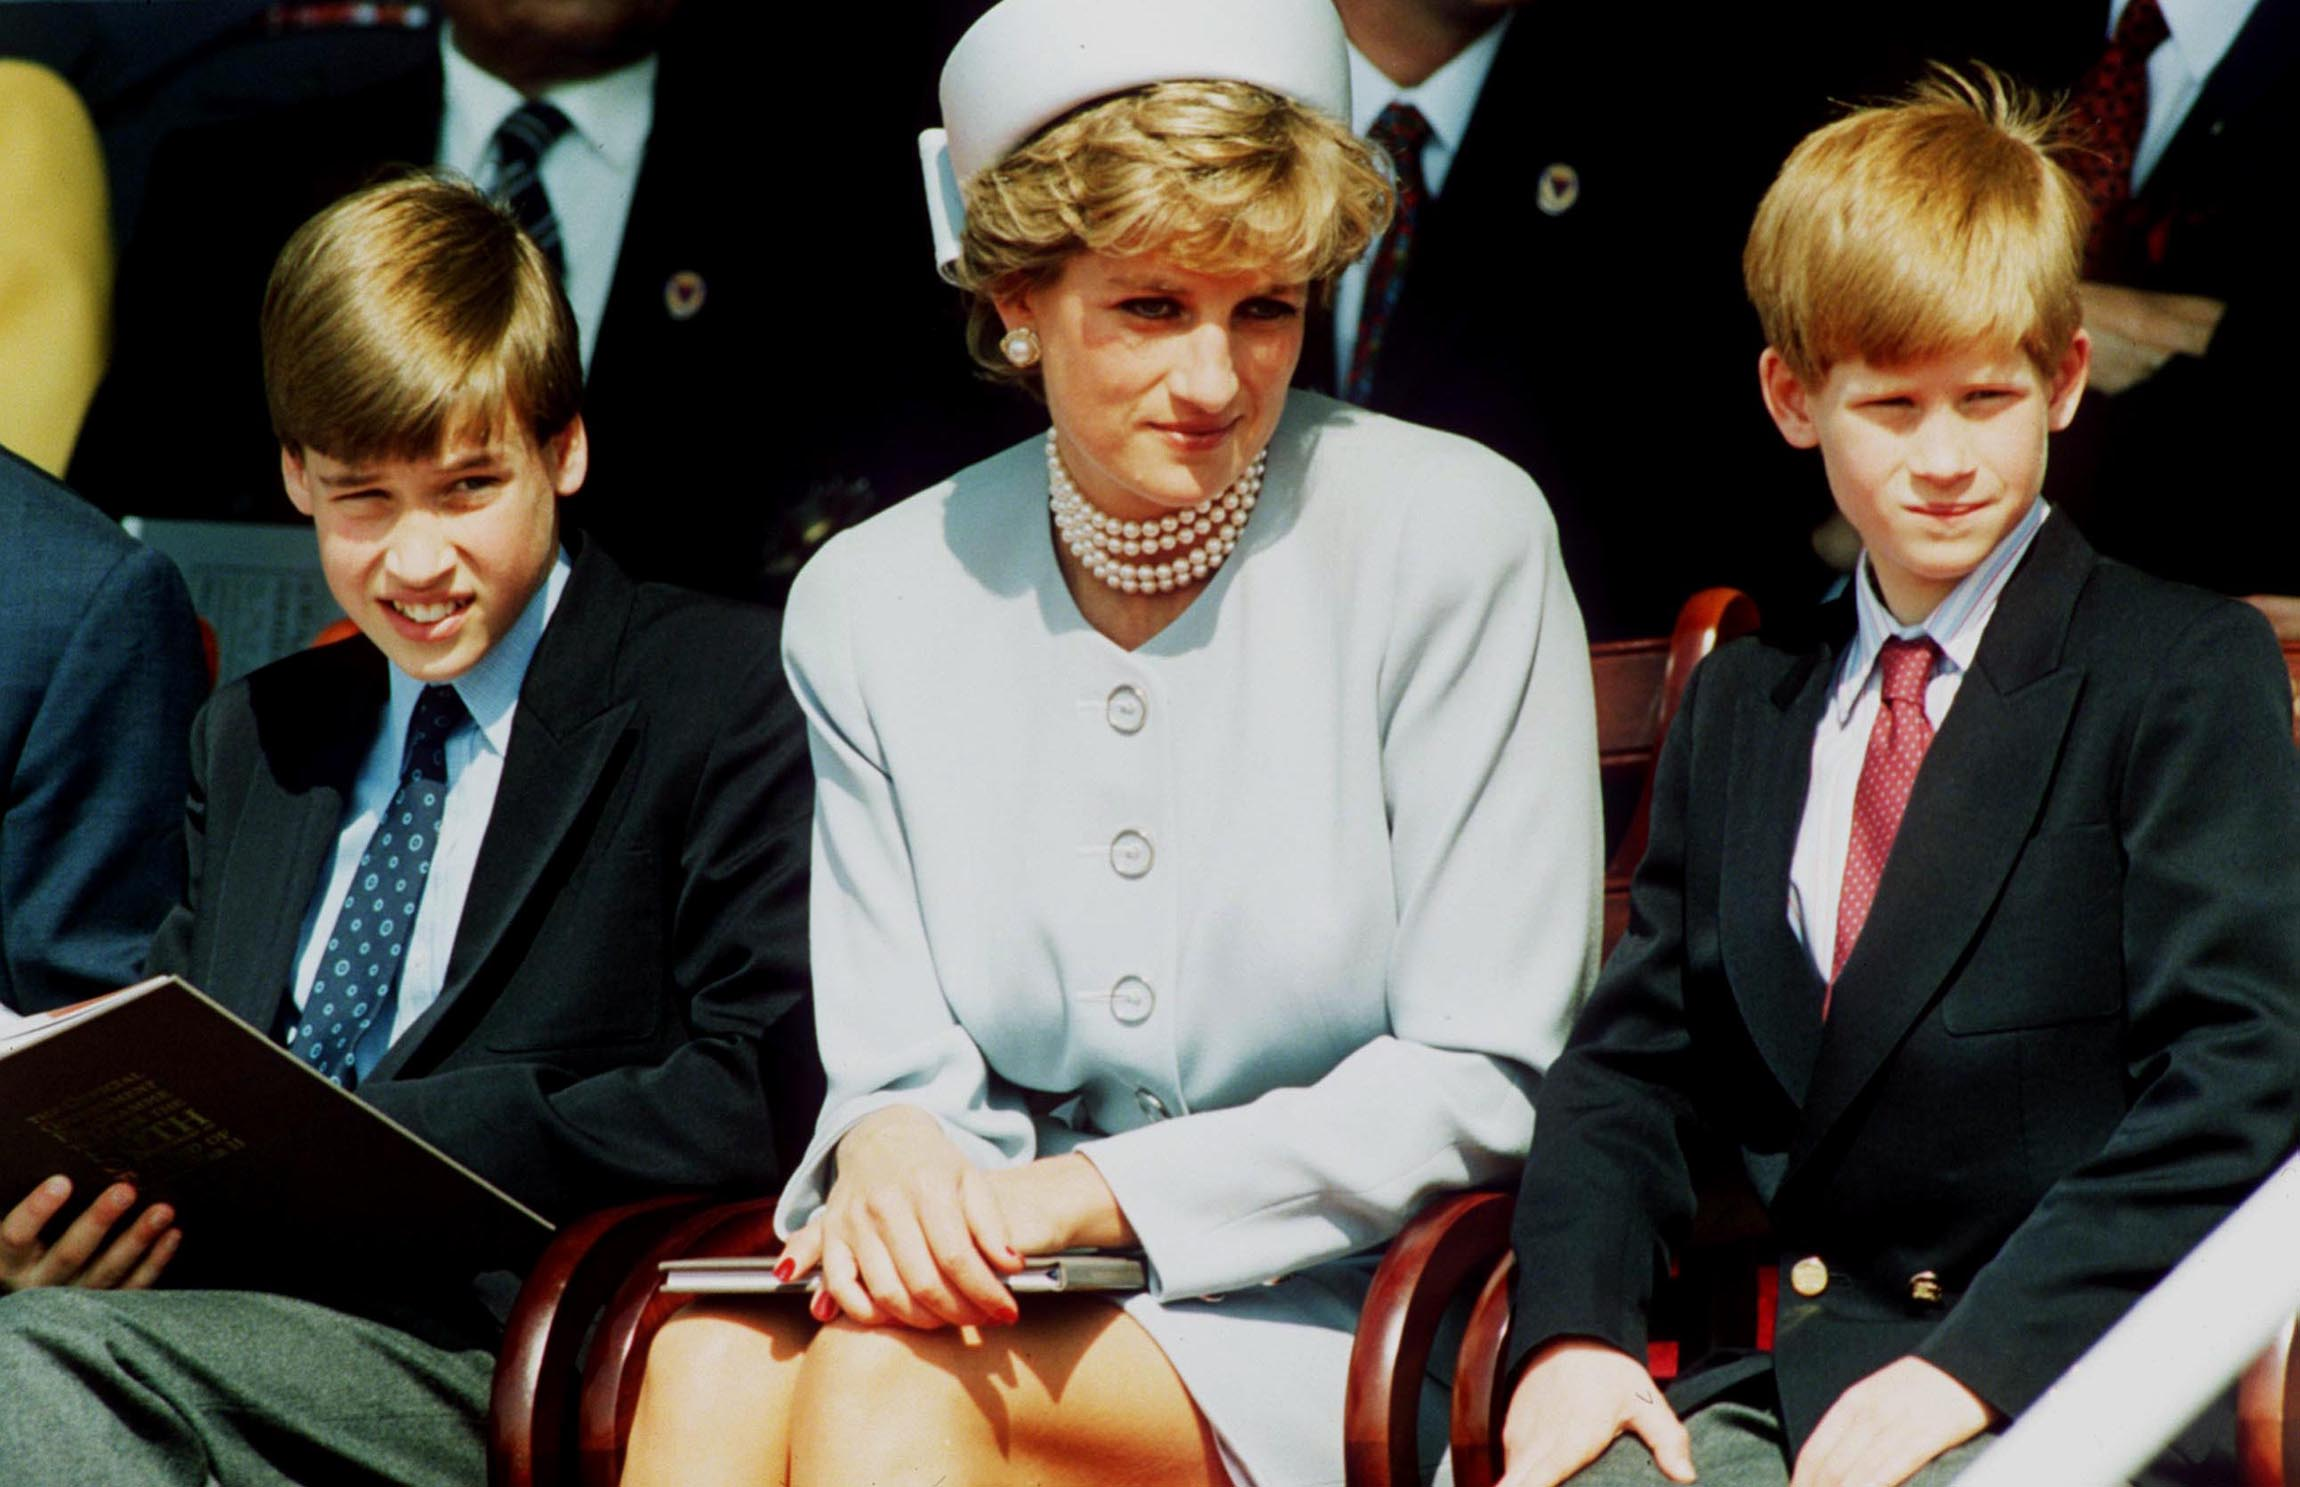 Princess Diana, Princess of Wales, with her sons Prince William and Prince Harry at the Heads of State VE Remembrance Service in Hyde Park on May 7, 1995, in London, England (Source: Anwar Hussein/Getty Images)